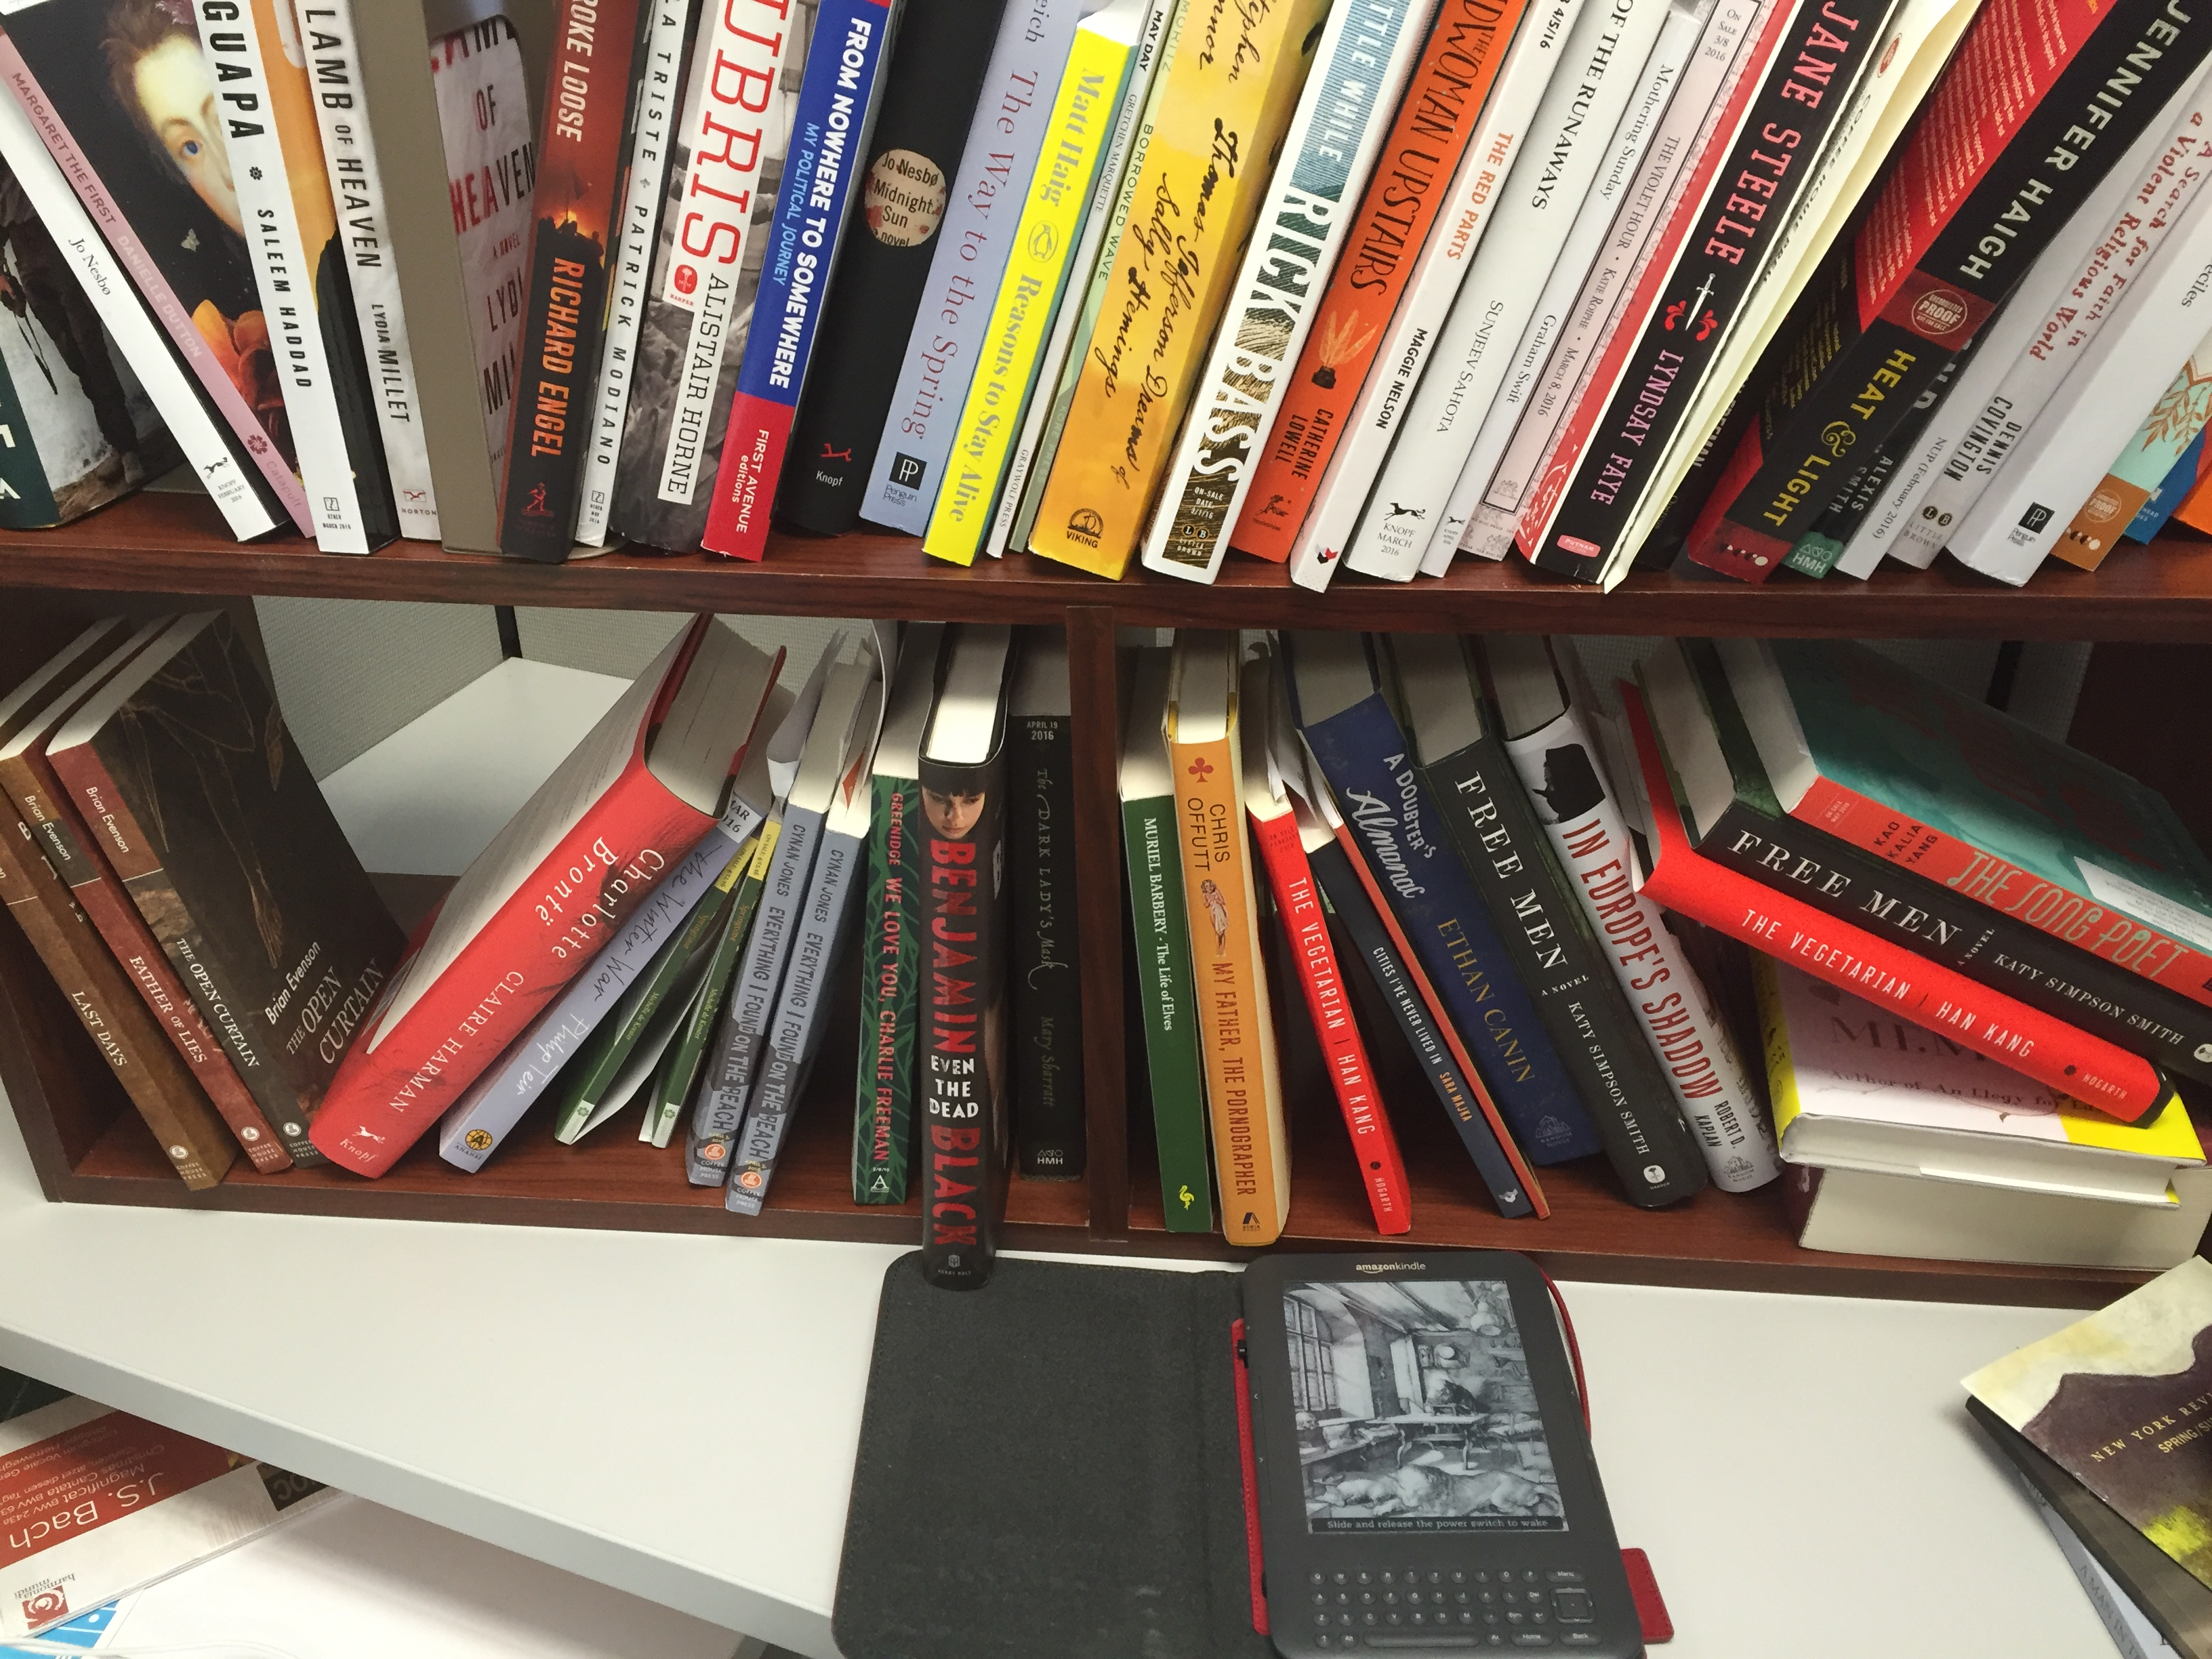 At the books editor's desk: A Kindle, and advance copies of books.